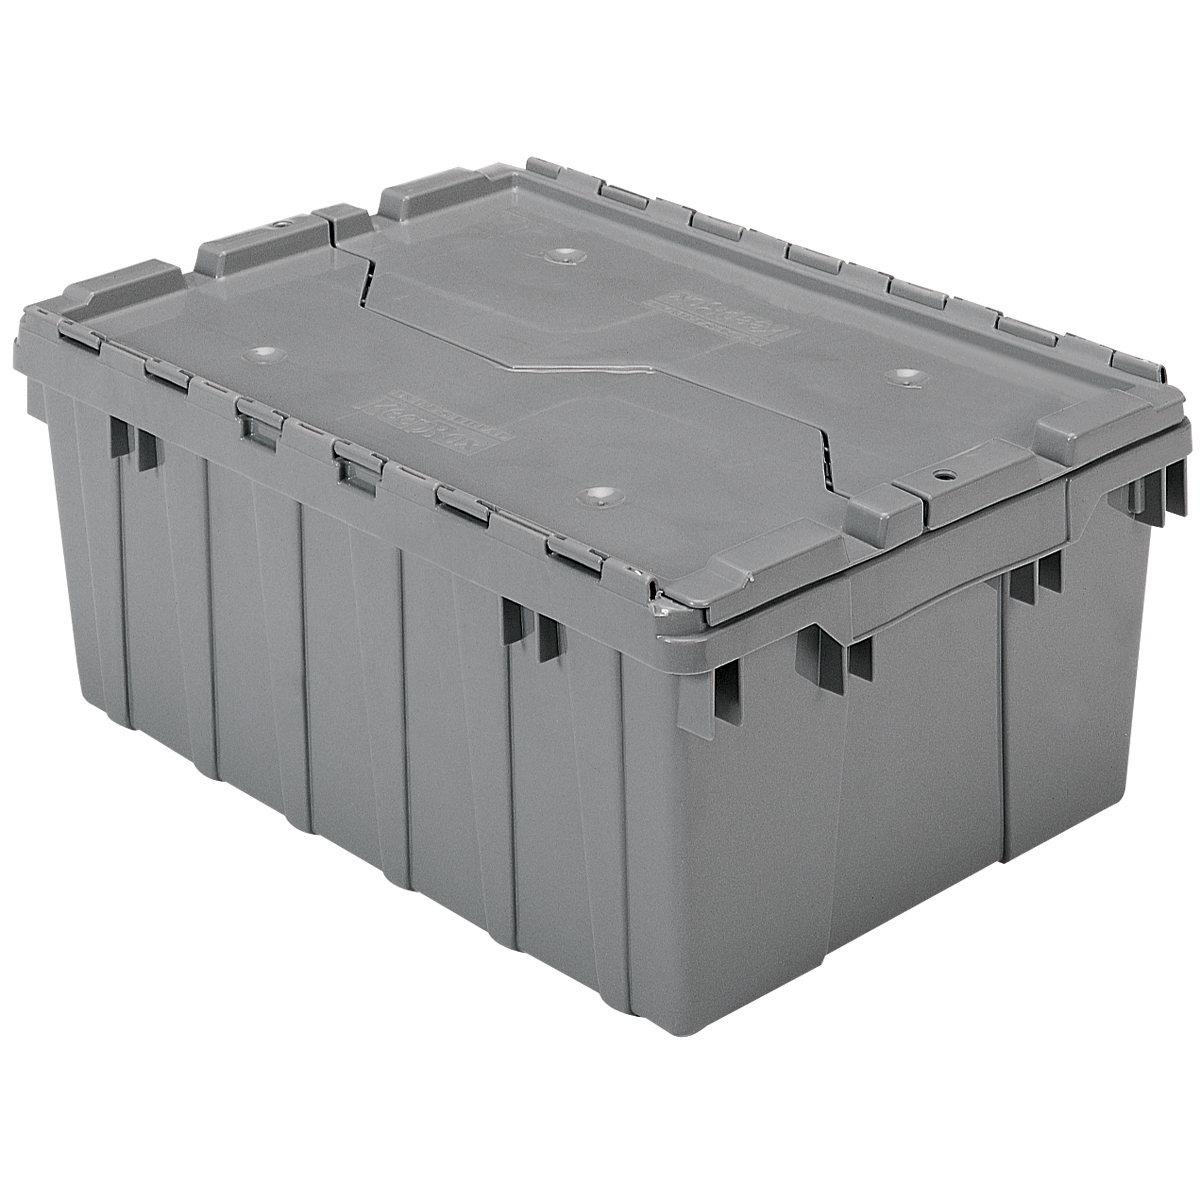 Attached Lid Container 8.5 gal, 21-1/2 x 15 x 9, Gray (39085).  This item sold in carton quantities of 6.